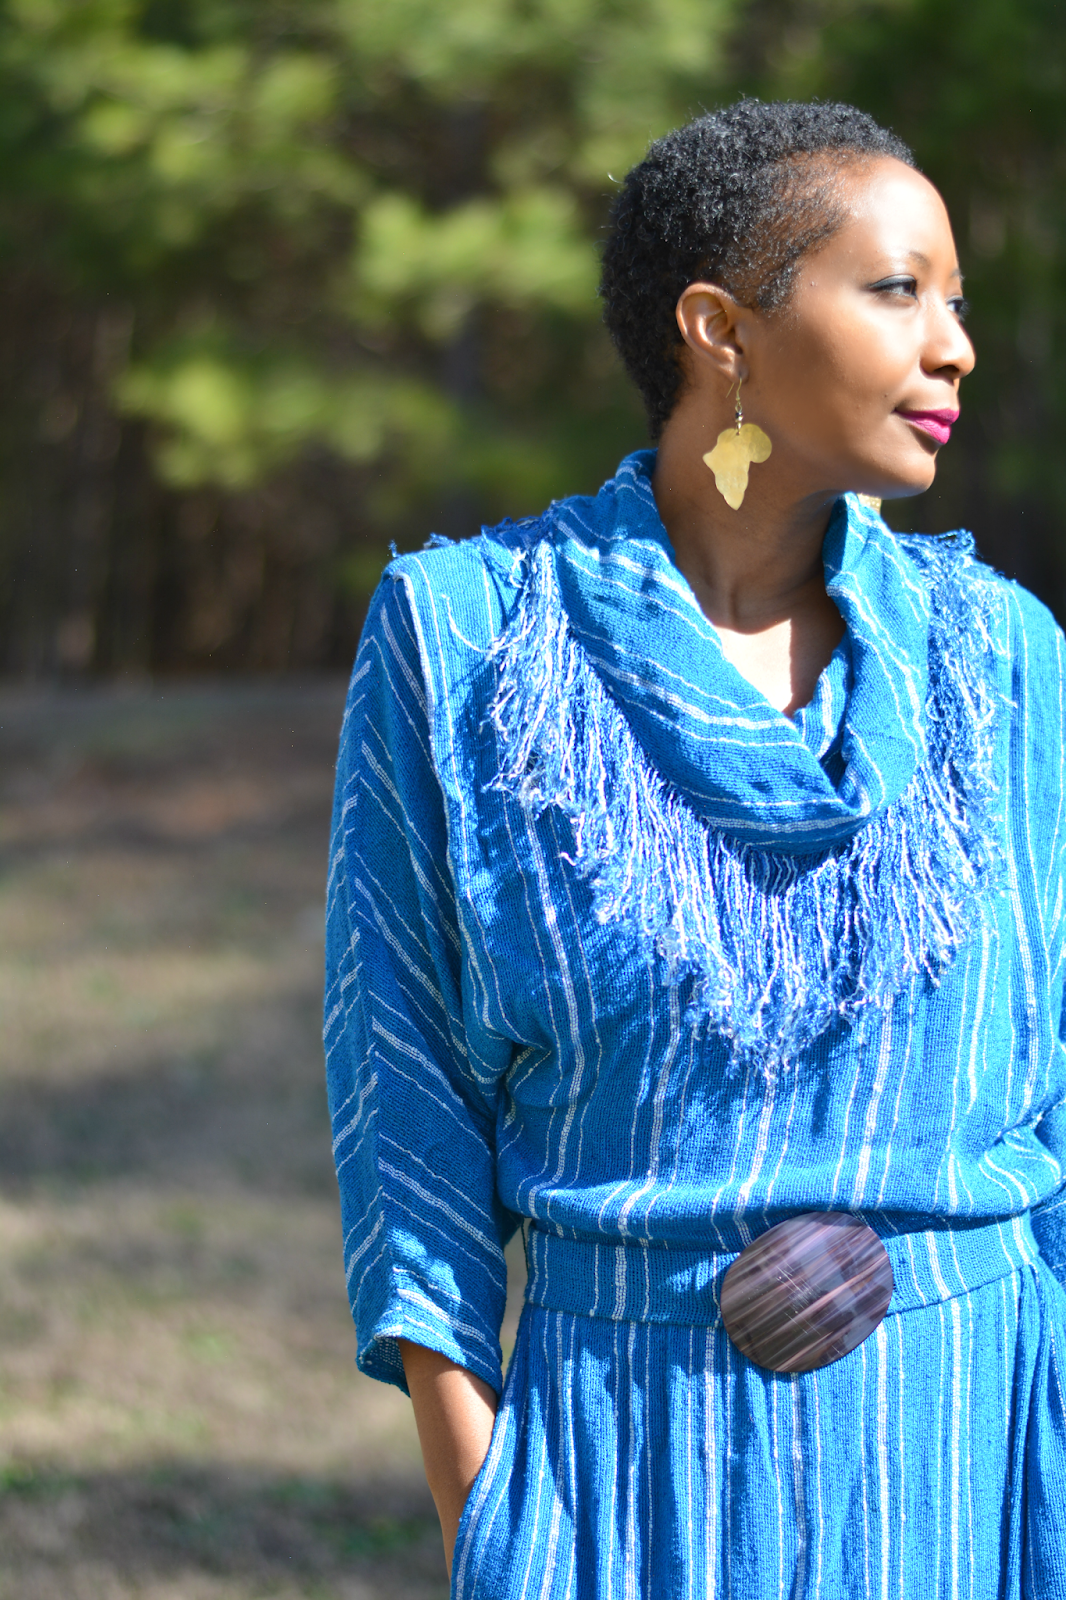 thrift style featuring a vintage fringe dress